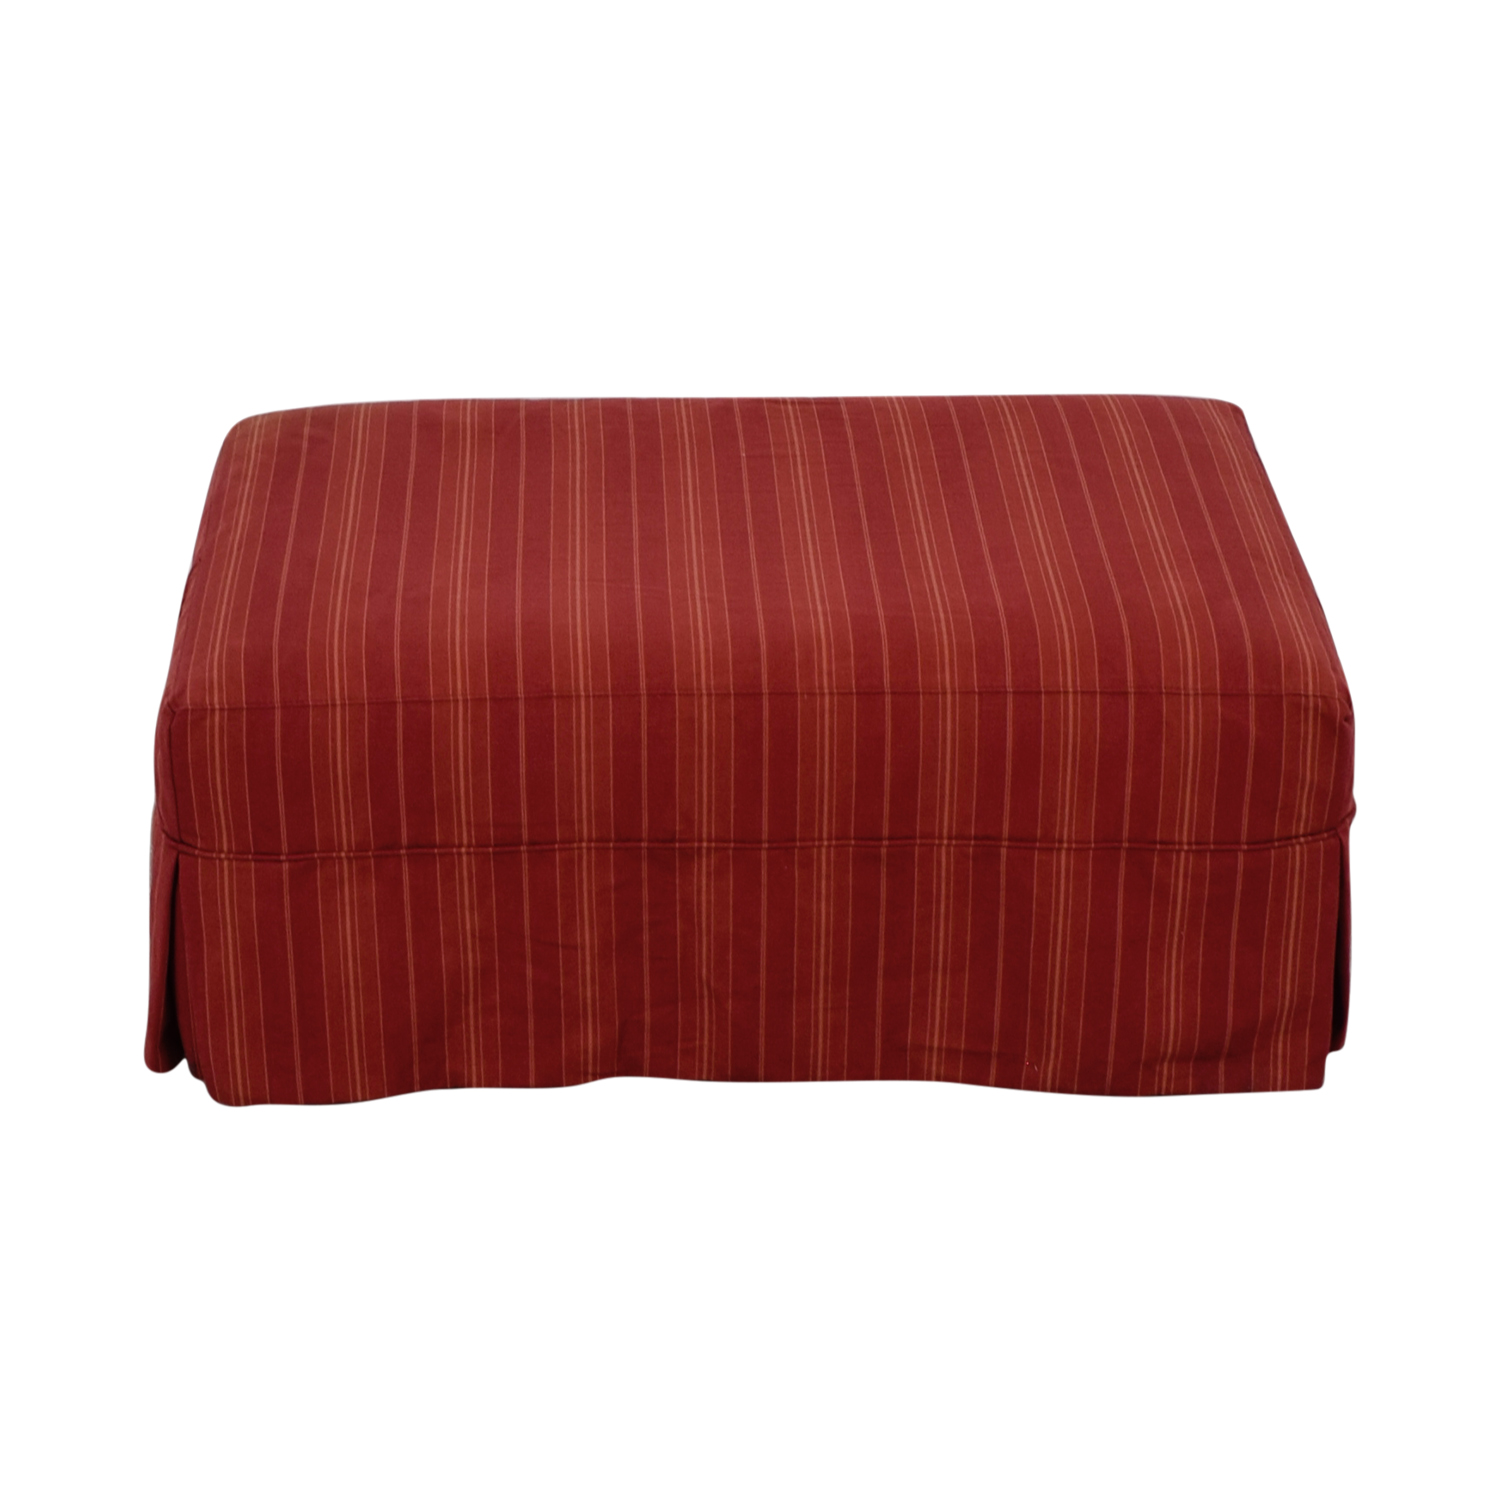 Crate & Barrel Willow Red and Beige Ottoman on Casters sale